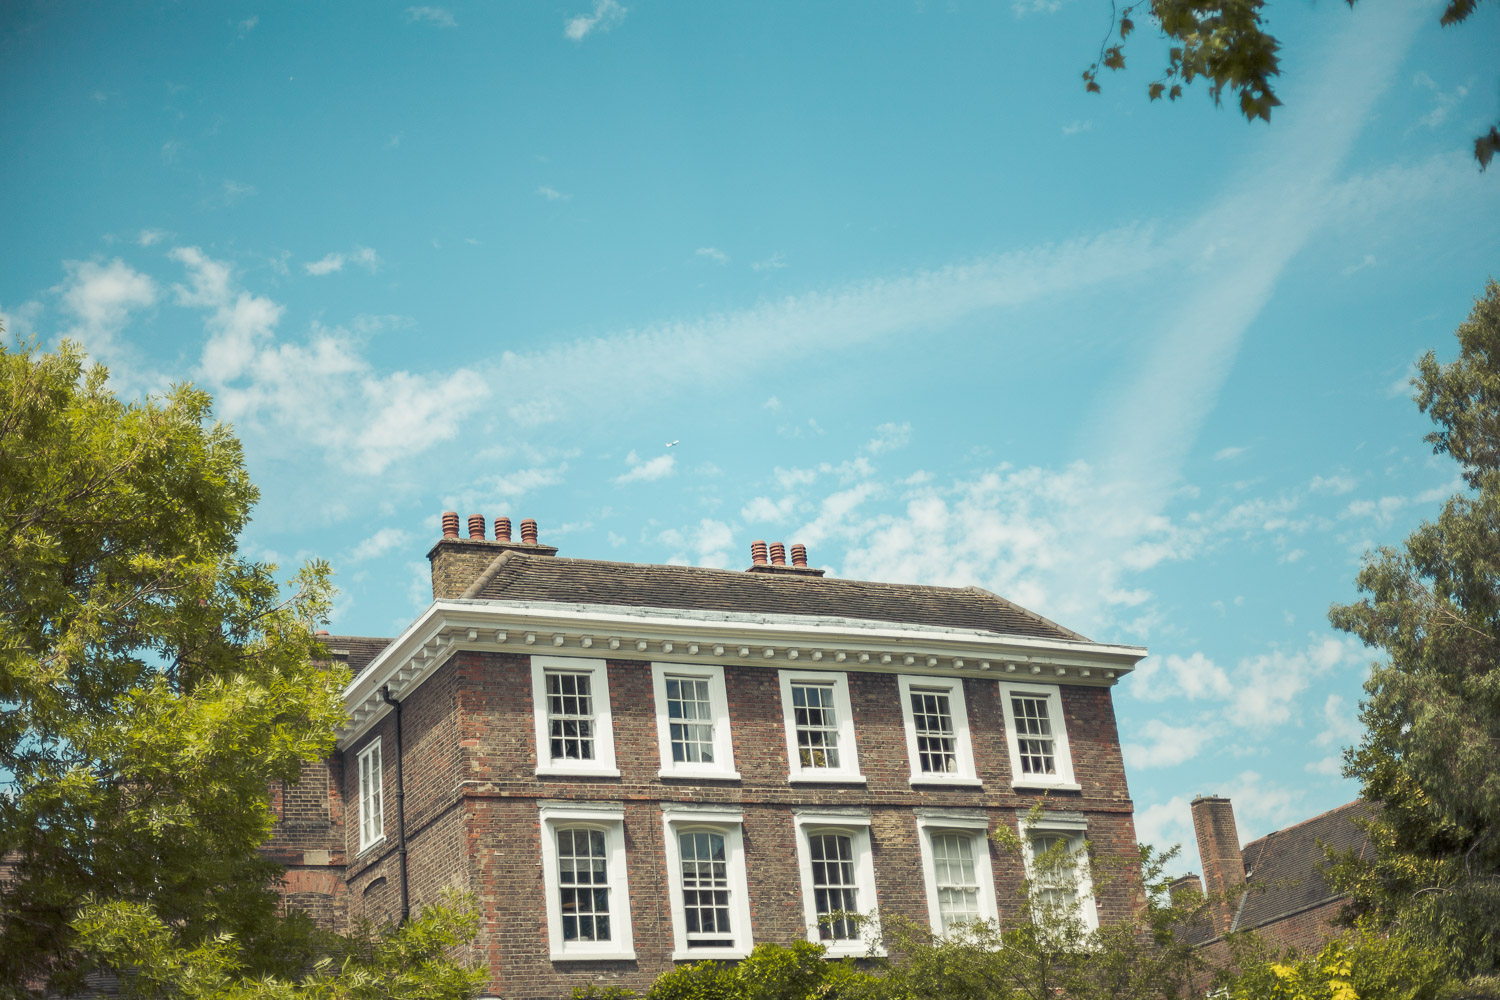 burgh-house-hampstead-north-london-wedding-0002.jpg